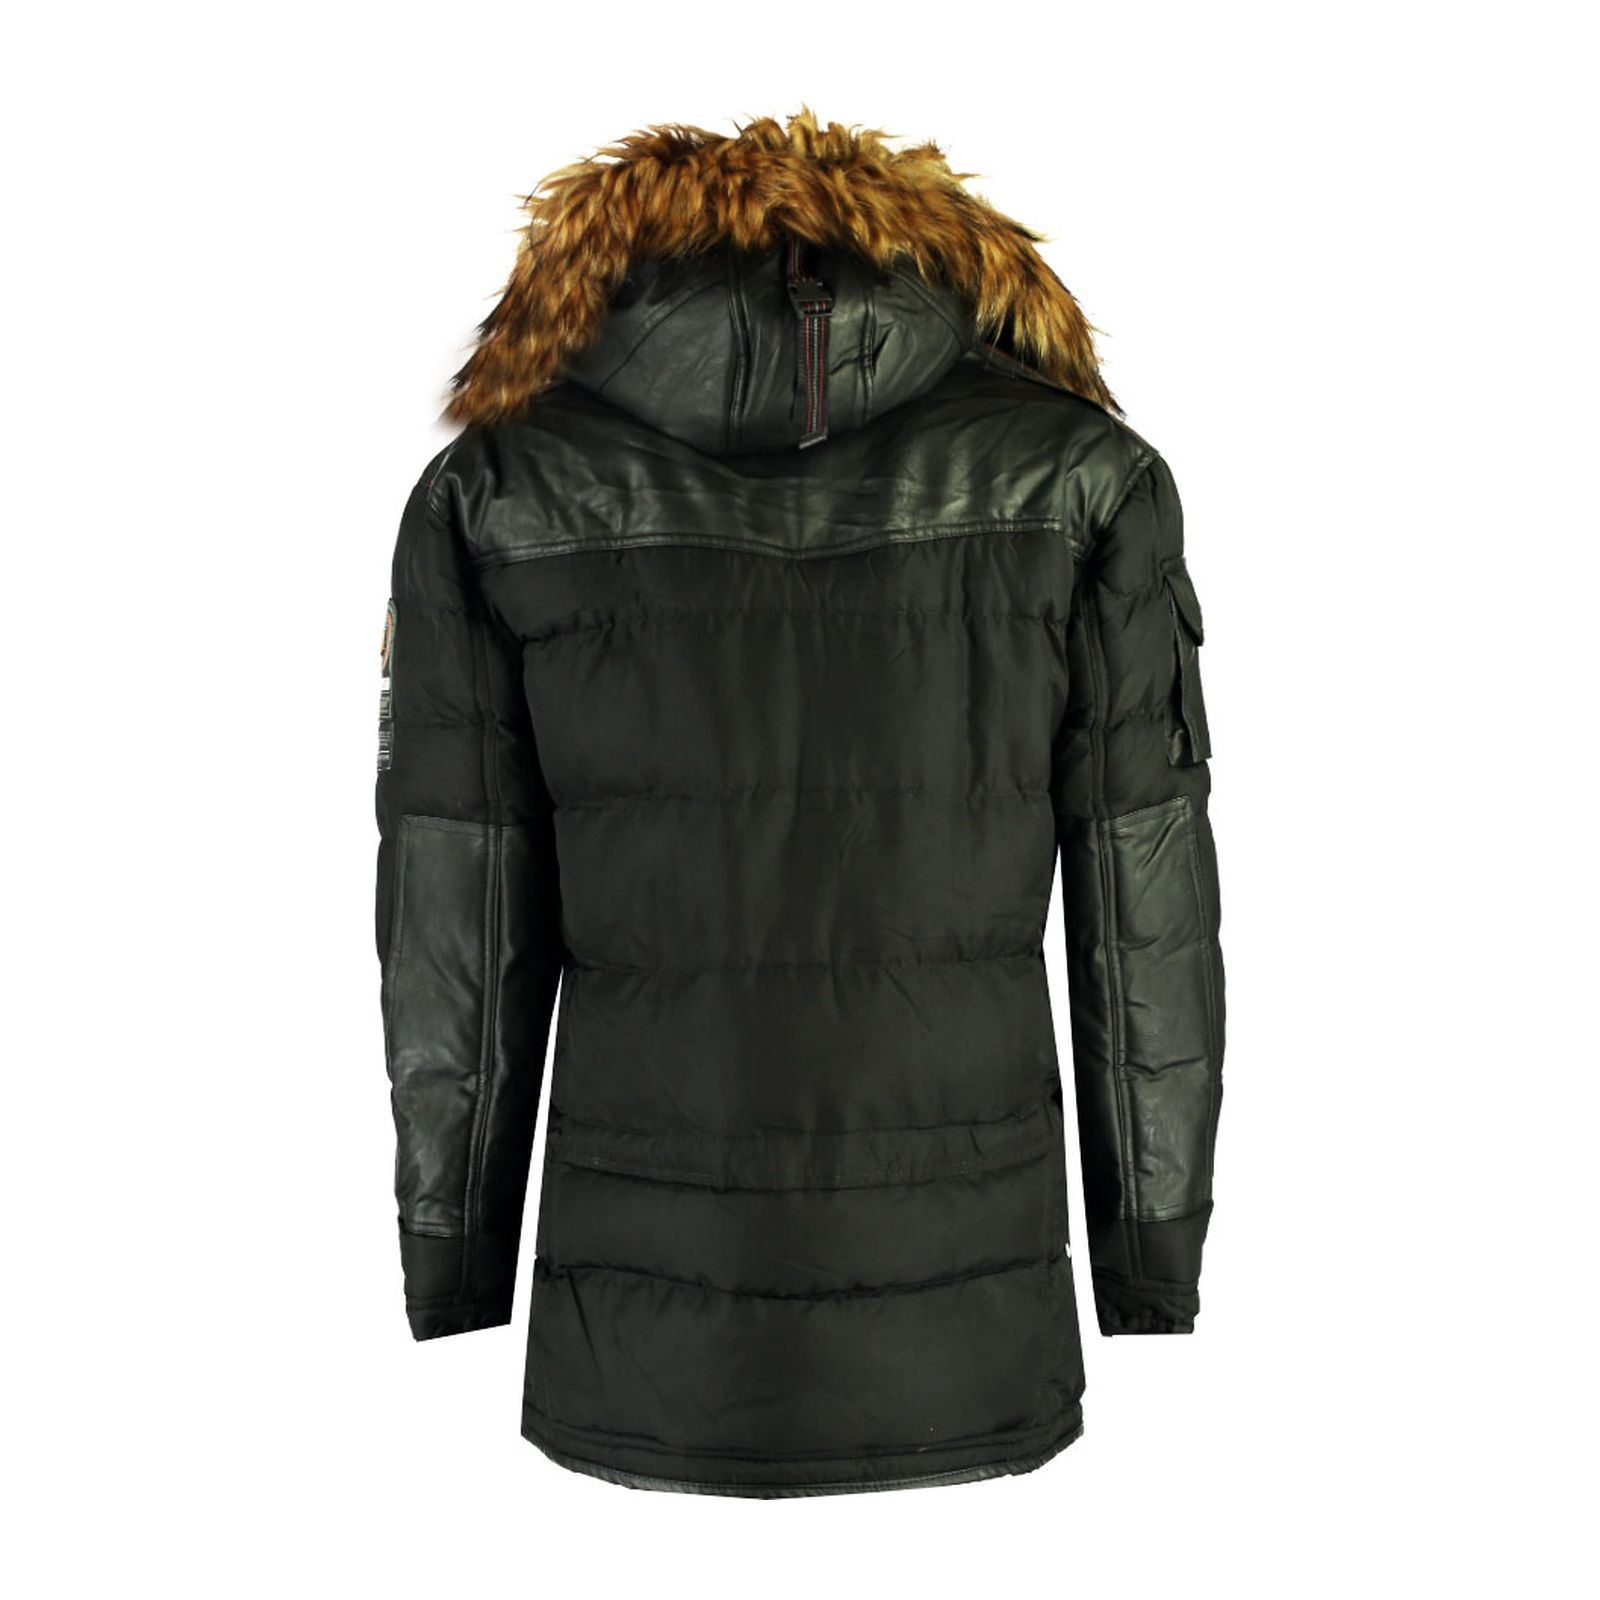 Kaki Norway Geographical Parka Norway Geographical 4xxUnr